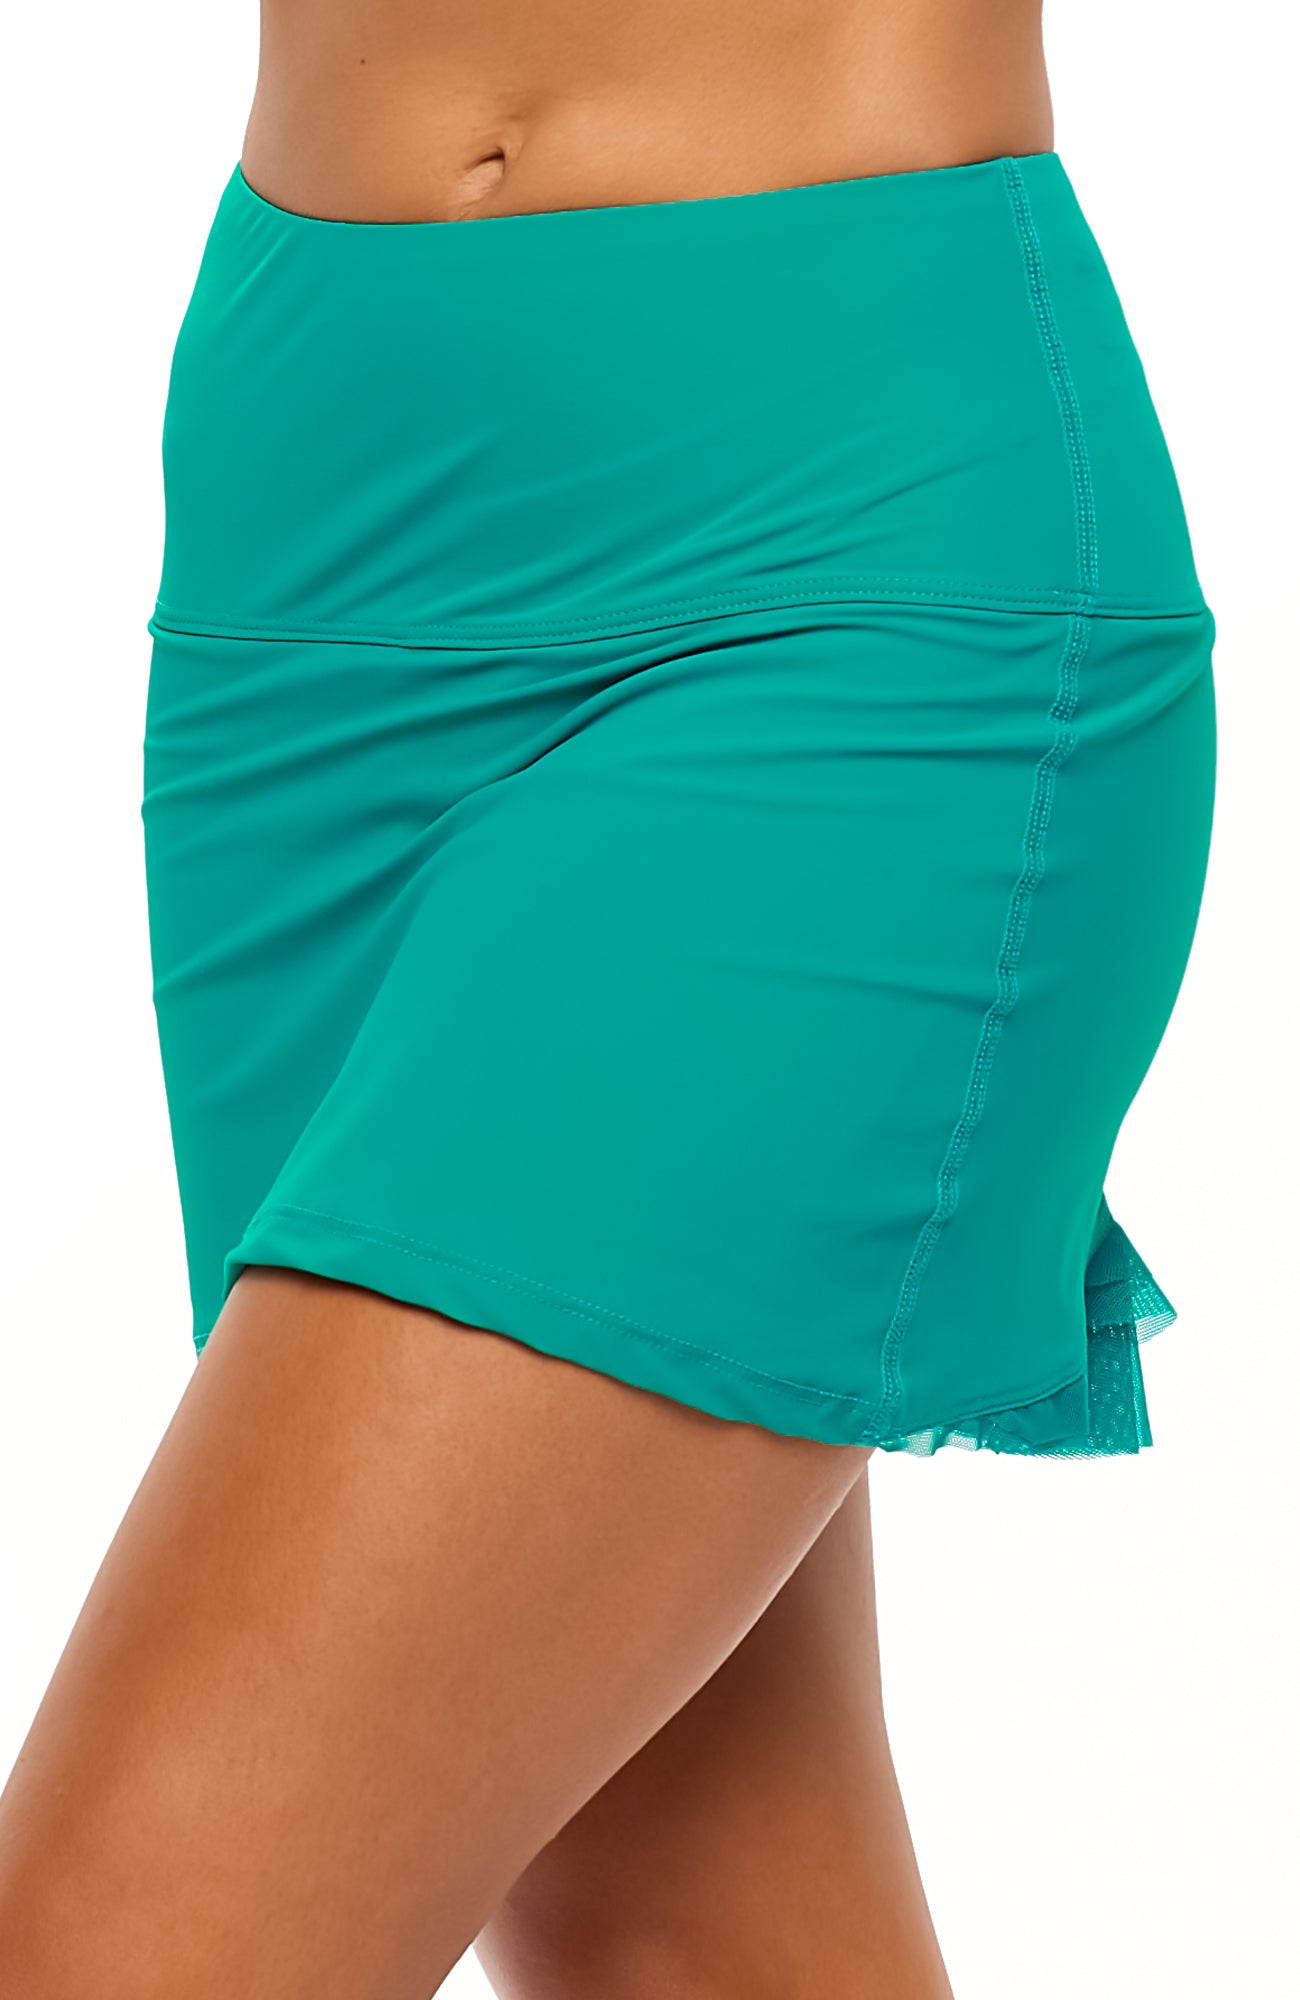 Cute as a Bunny Skirt Emerald Green tennis dresses side view